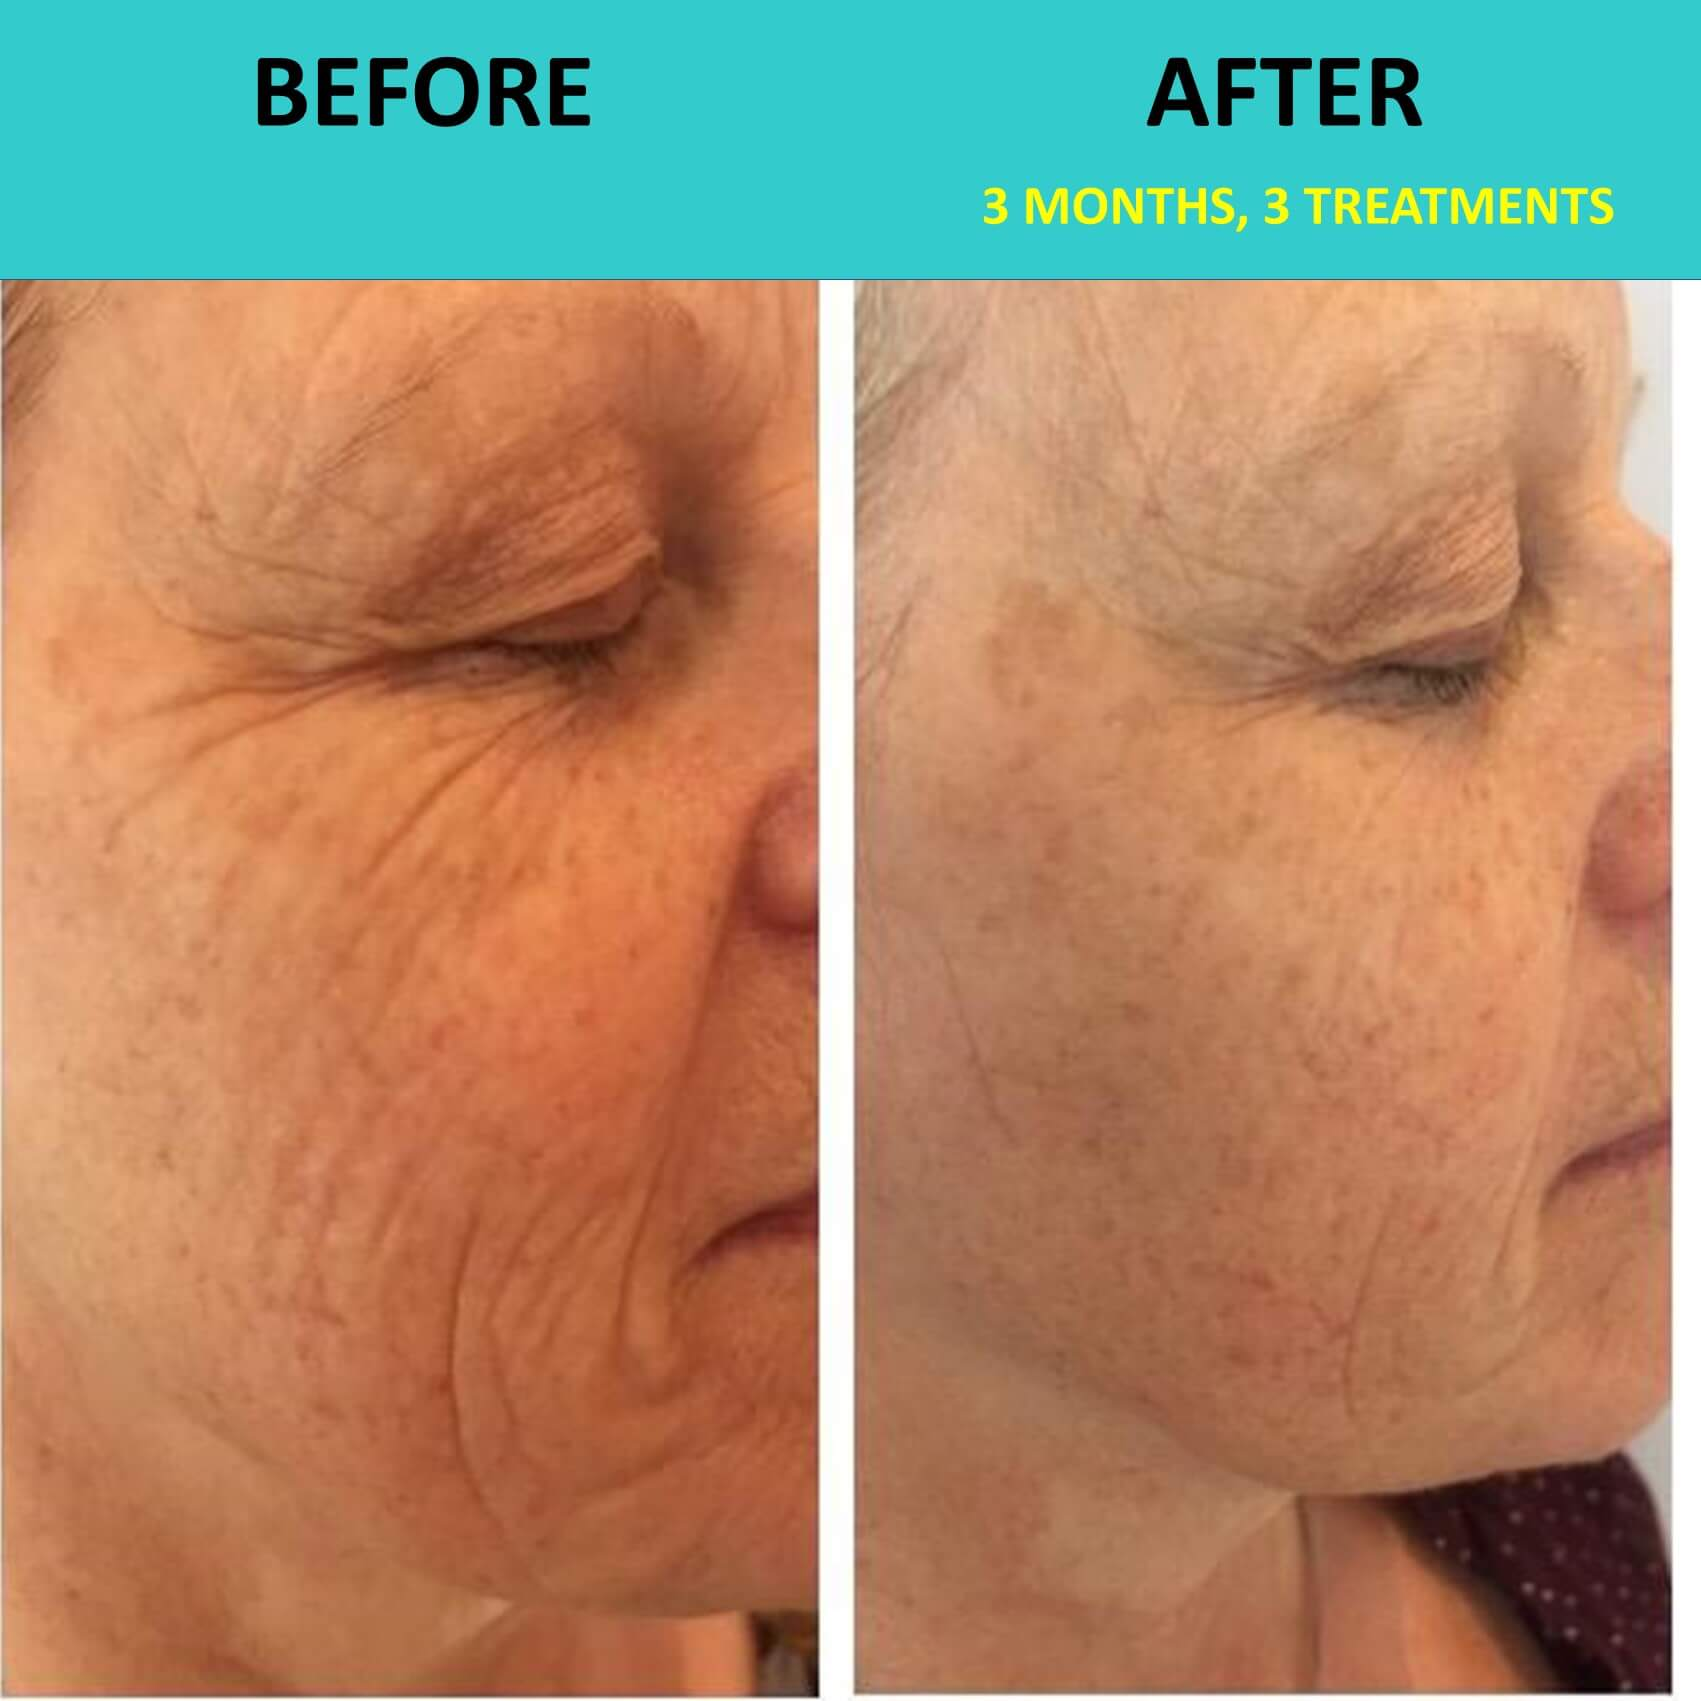 New Face after 3 treatments - incredible wrinkle removal in action!